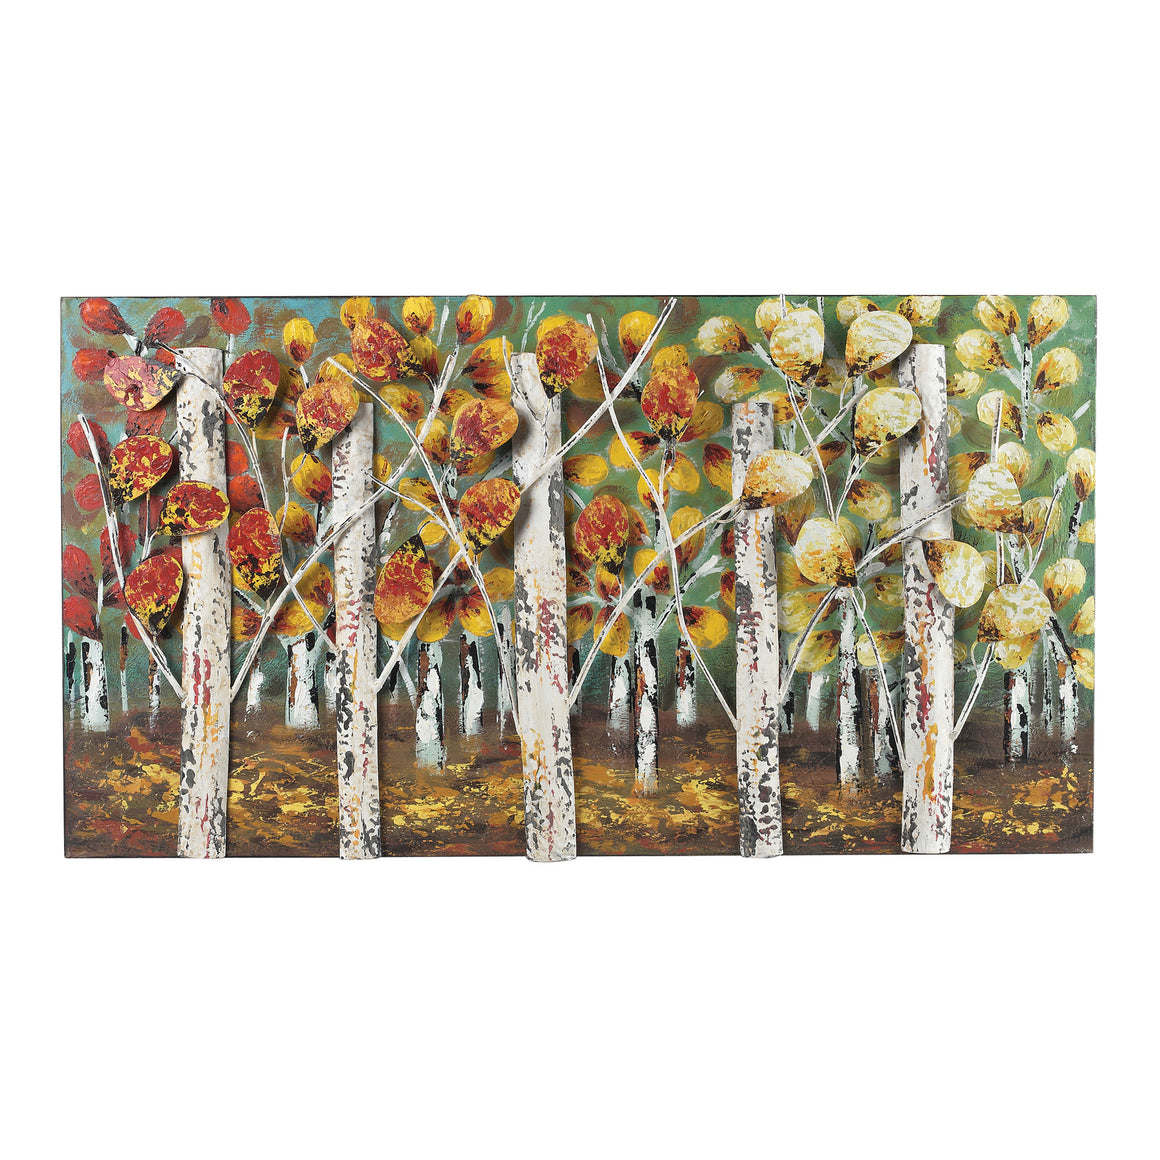 Autumn Birch-Autumn Birch Metal Wall Decor by Sterling